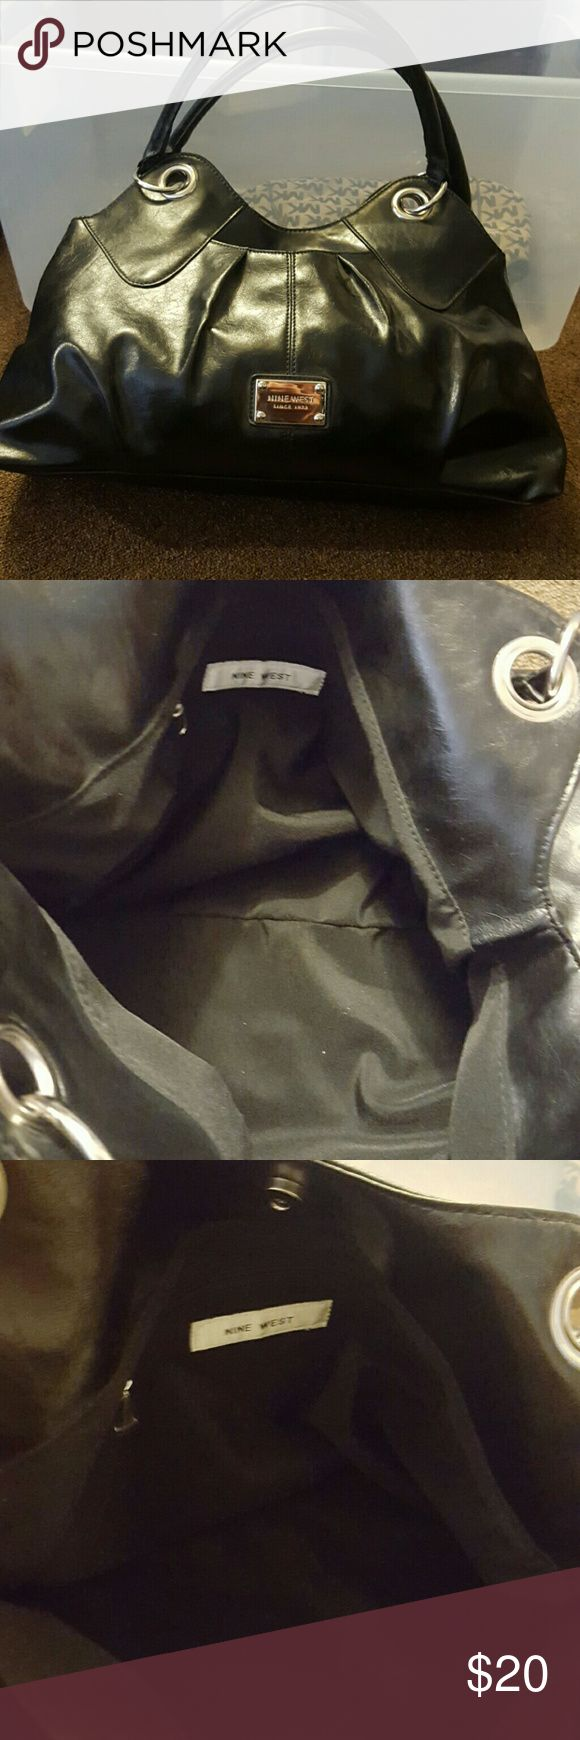 NWT black nine west purse great NWT black nine west bag!!! non smoking pet free home !!!  all reasonable offers requested!!! Nine West Bags Shoulder Bags